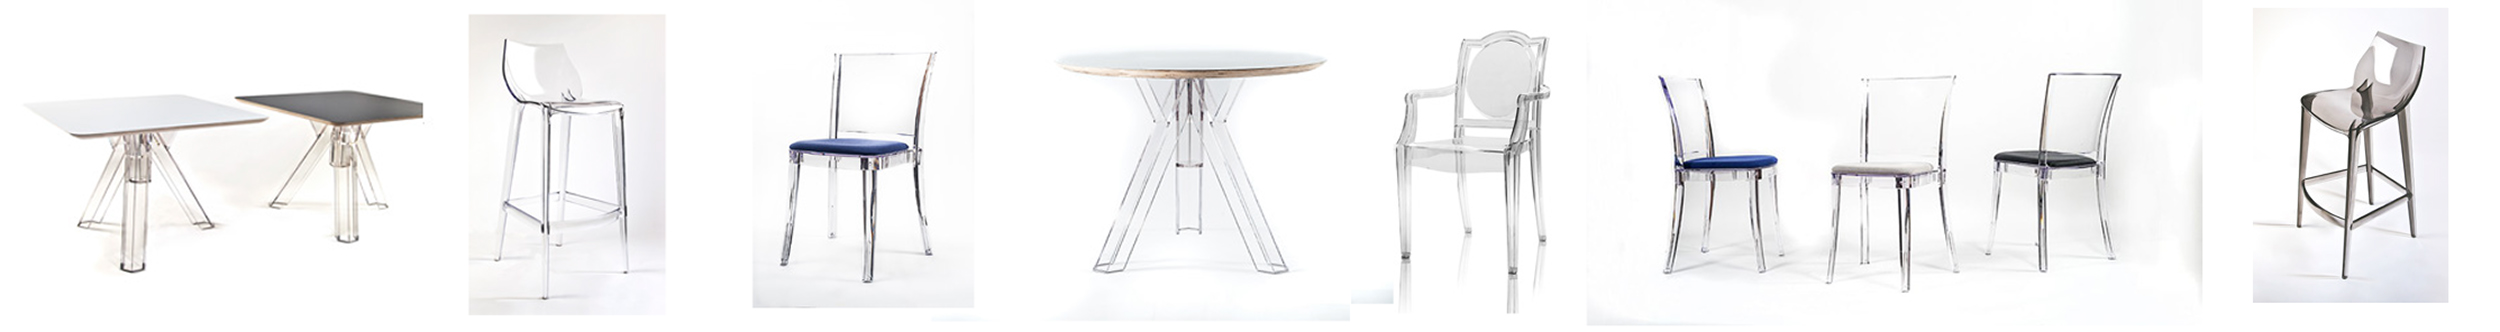 Bellelli Design - Polycarbonate Bar Stools